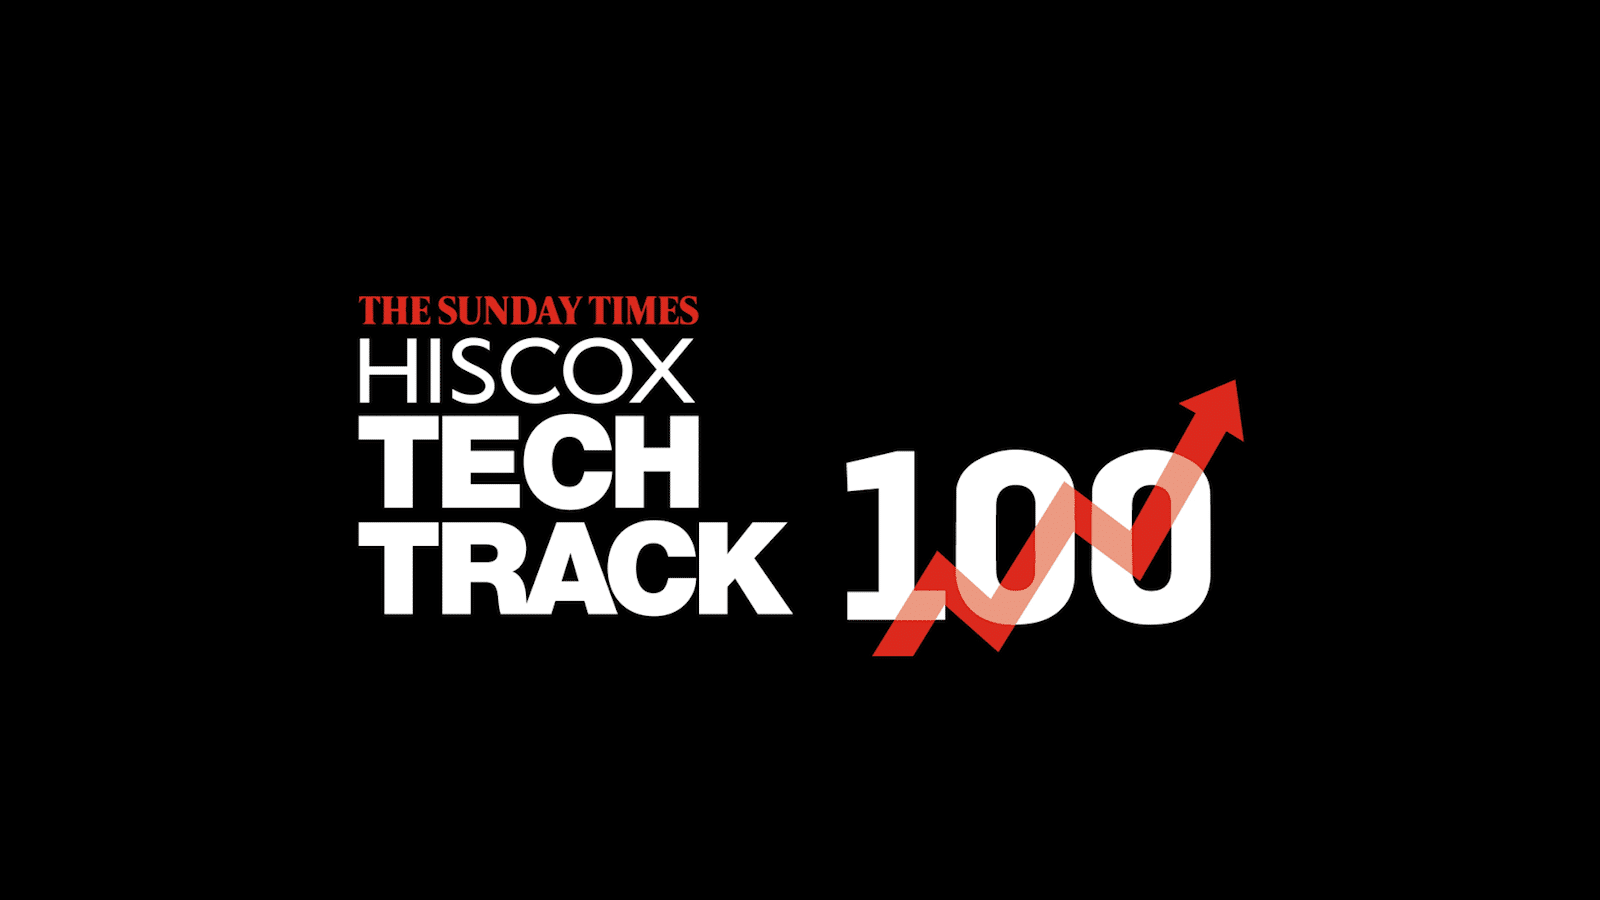 Hiscox Tech Track 100 with Positive Graph Image